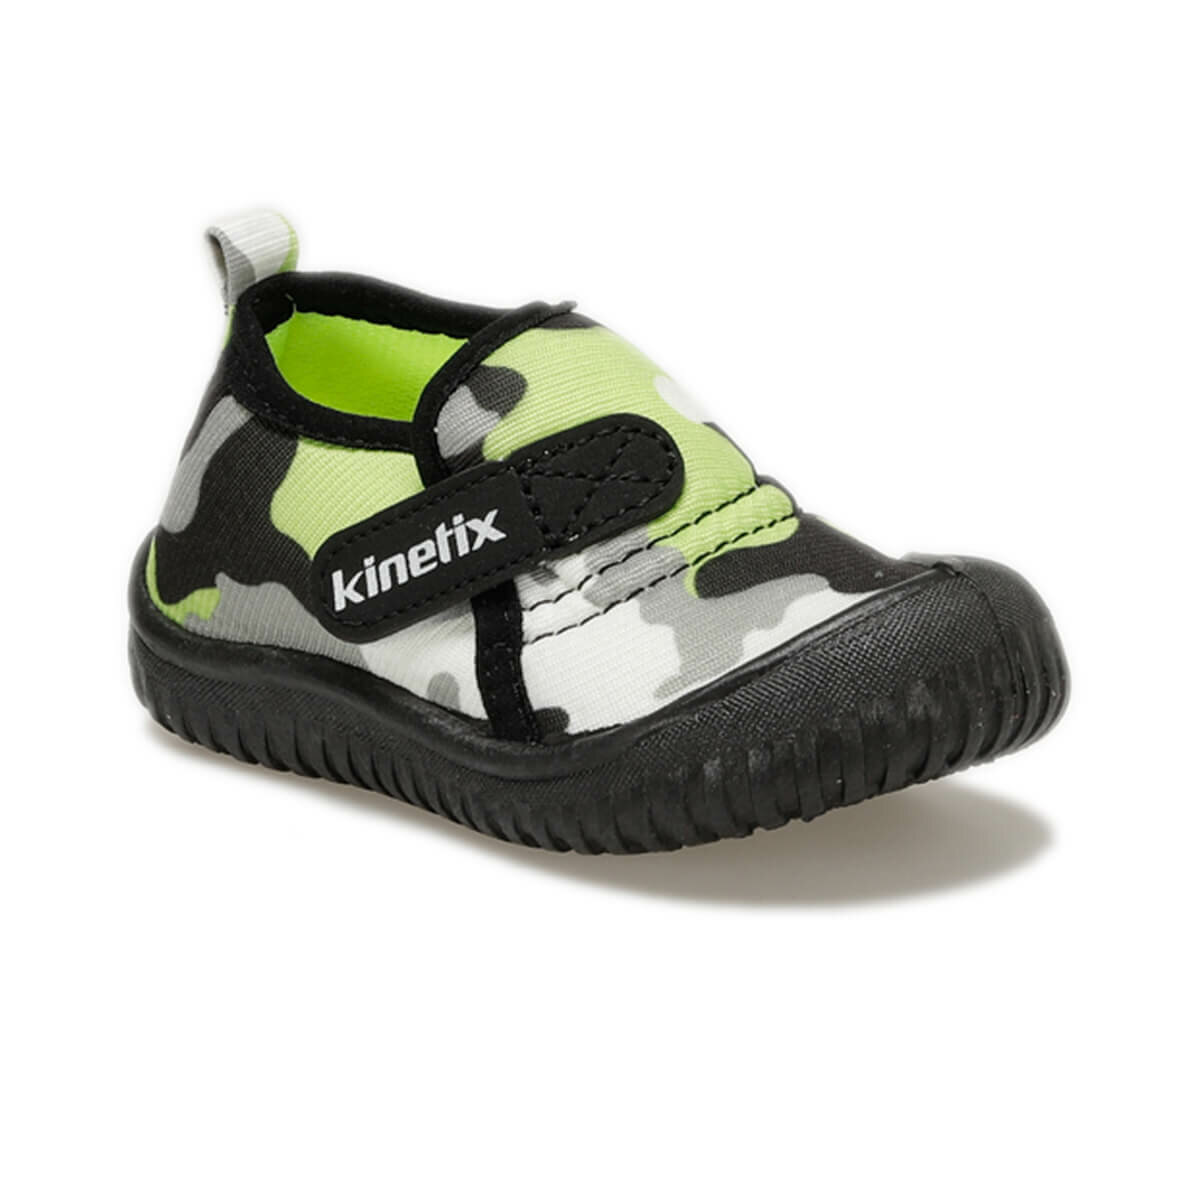 FLO MONIK Green Male Child Shoes KINETIX